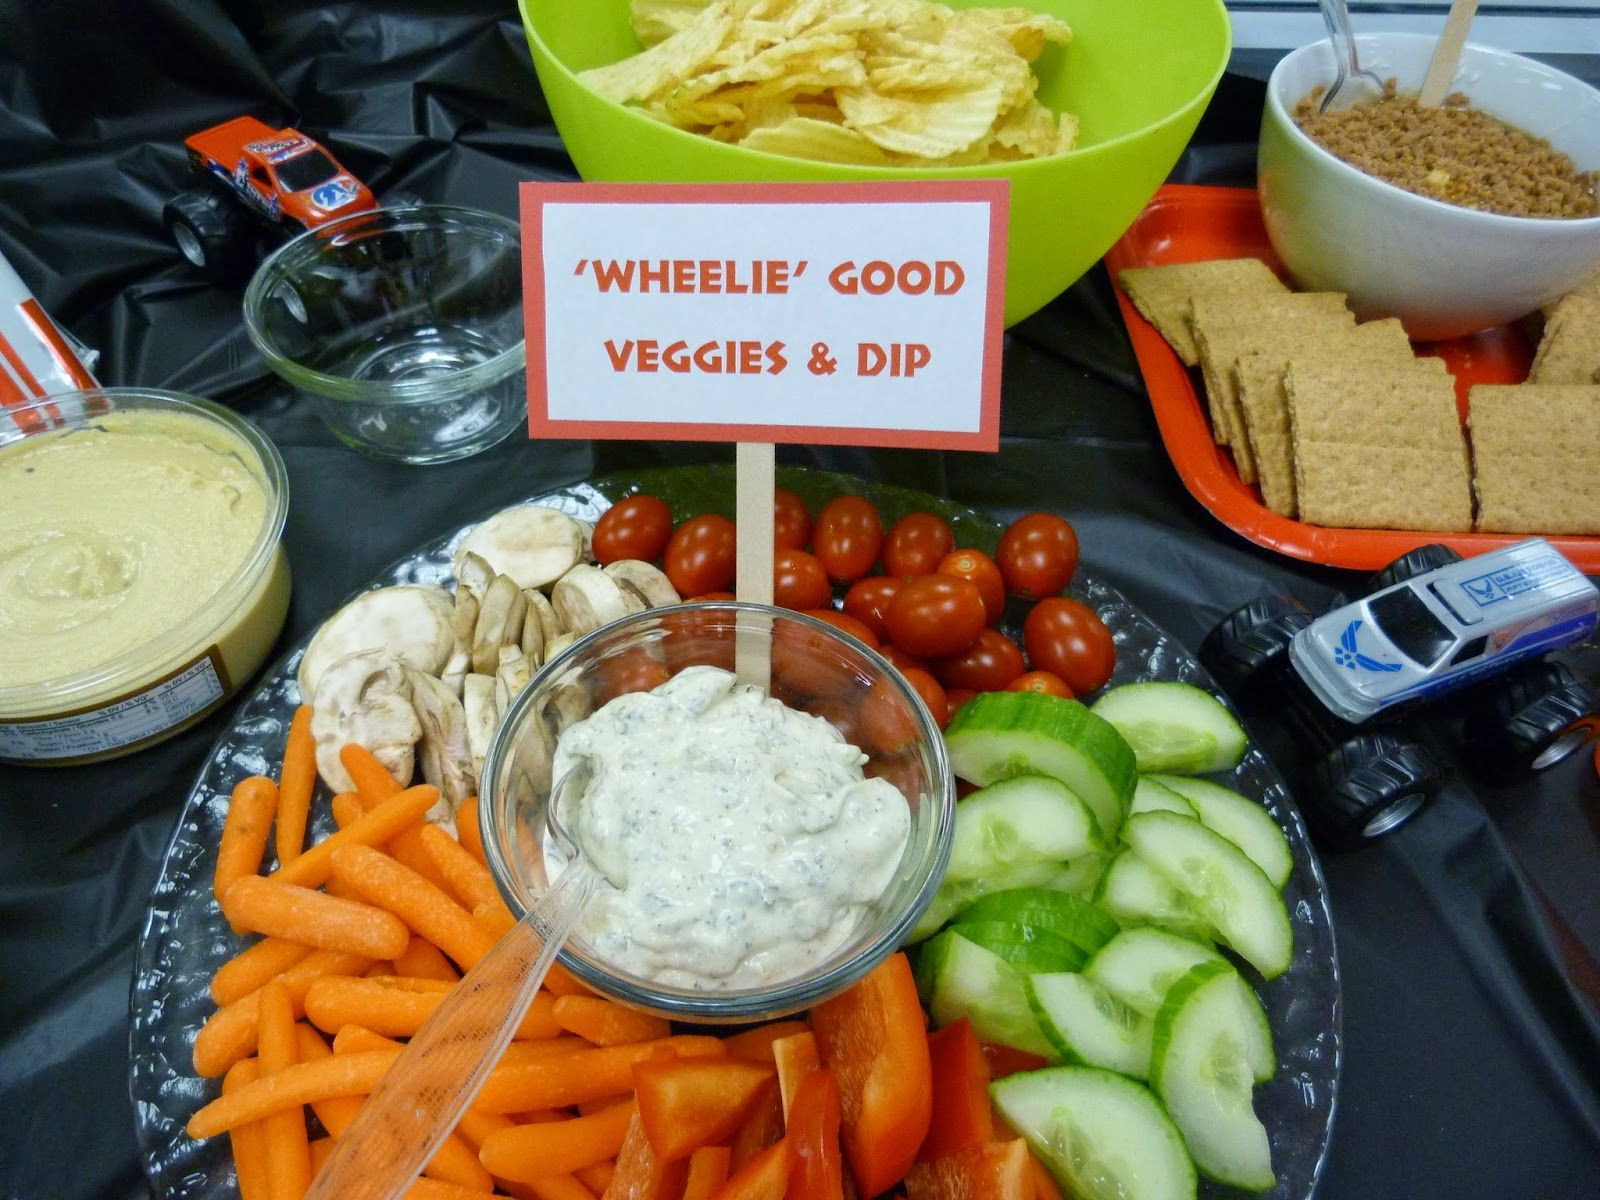 Monster Truck Birthday Party Food Ideas  Great idea for a traditional veggie platter